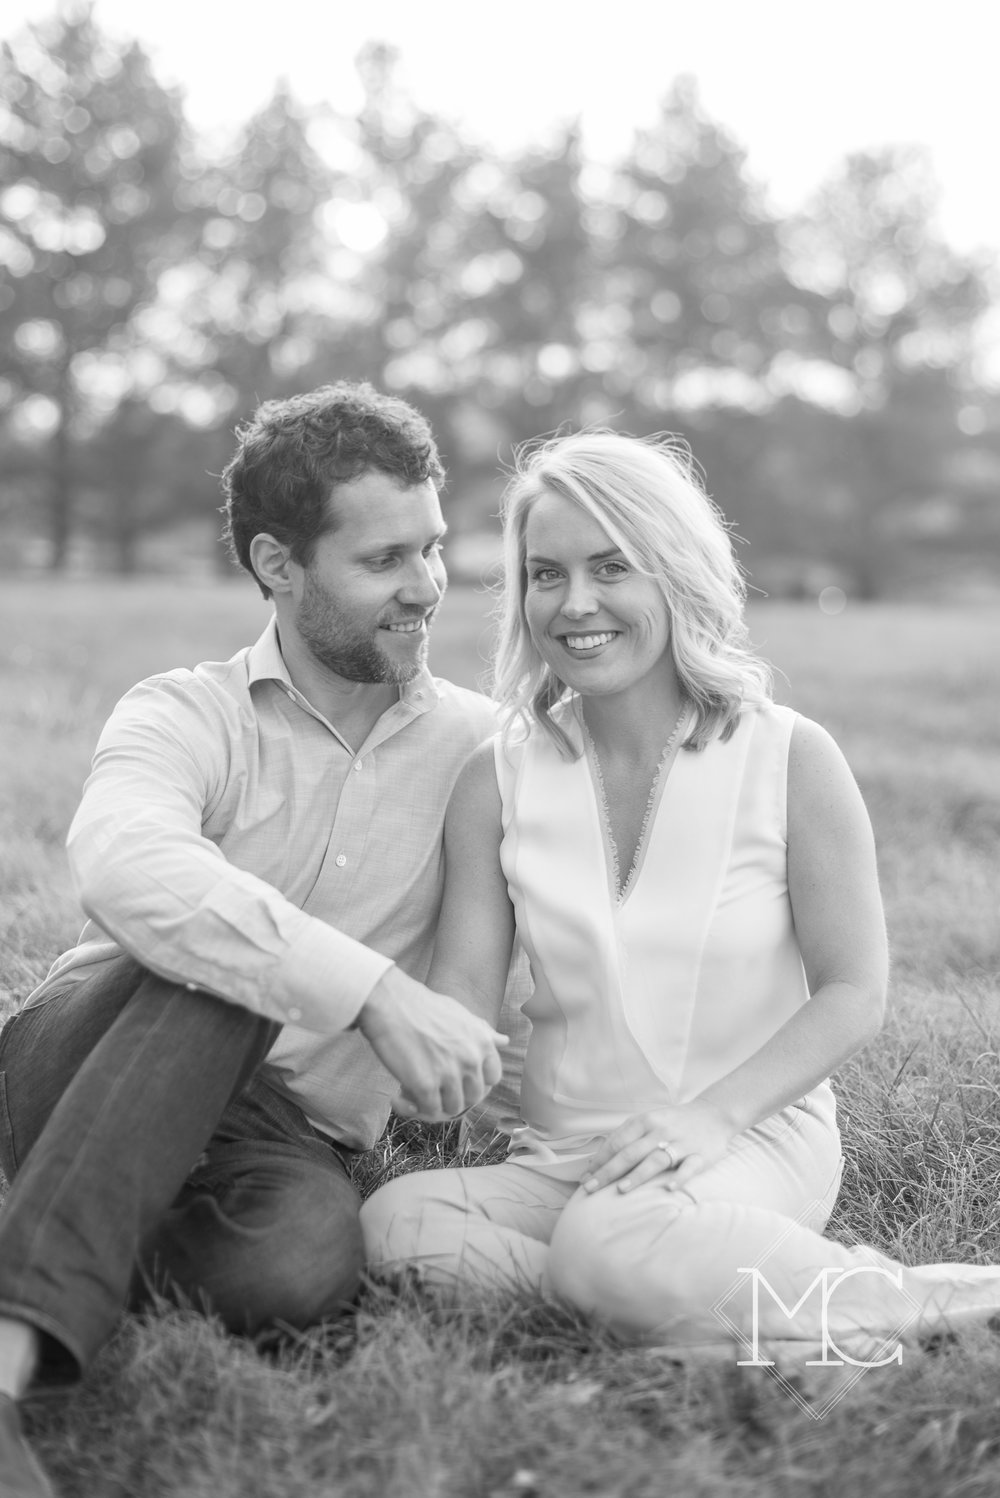 image from nashville family lifestyle photo session on a farm in franklin